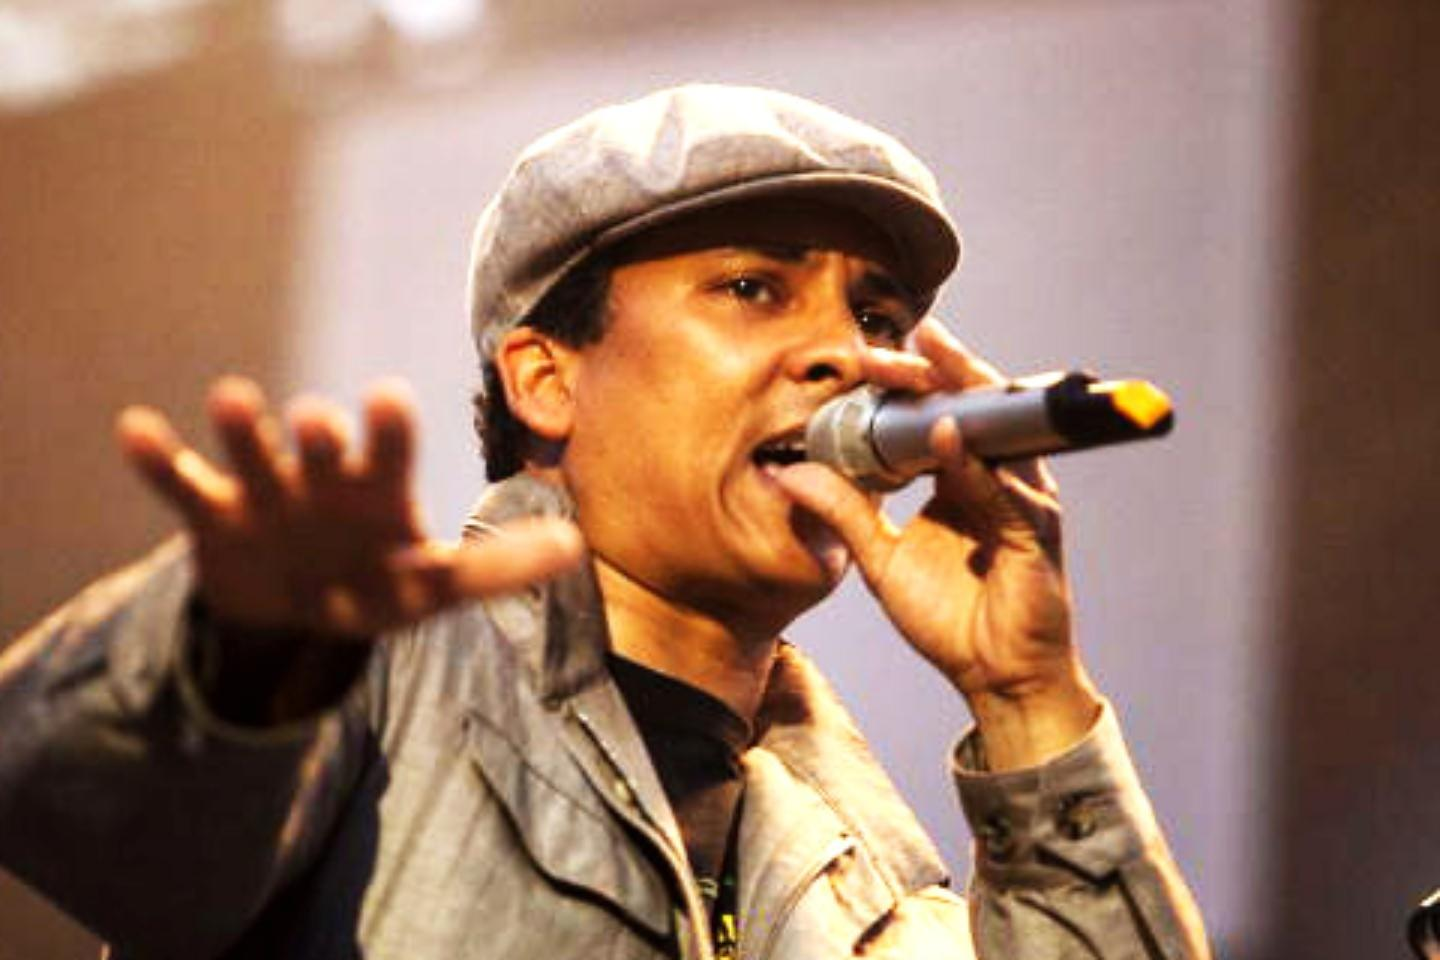 Xavier Naidoo Tickets Tour Dates & Concerts Songkick